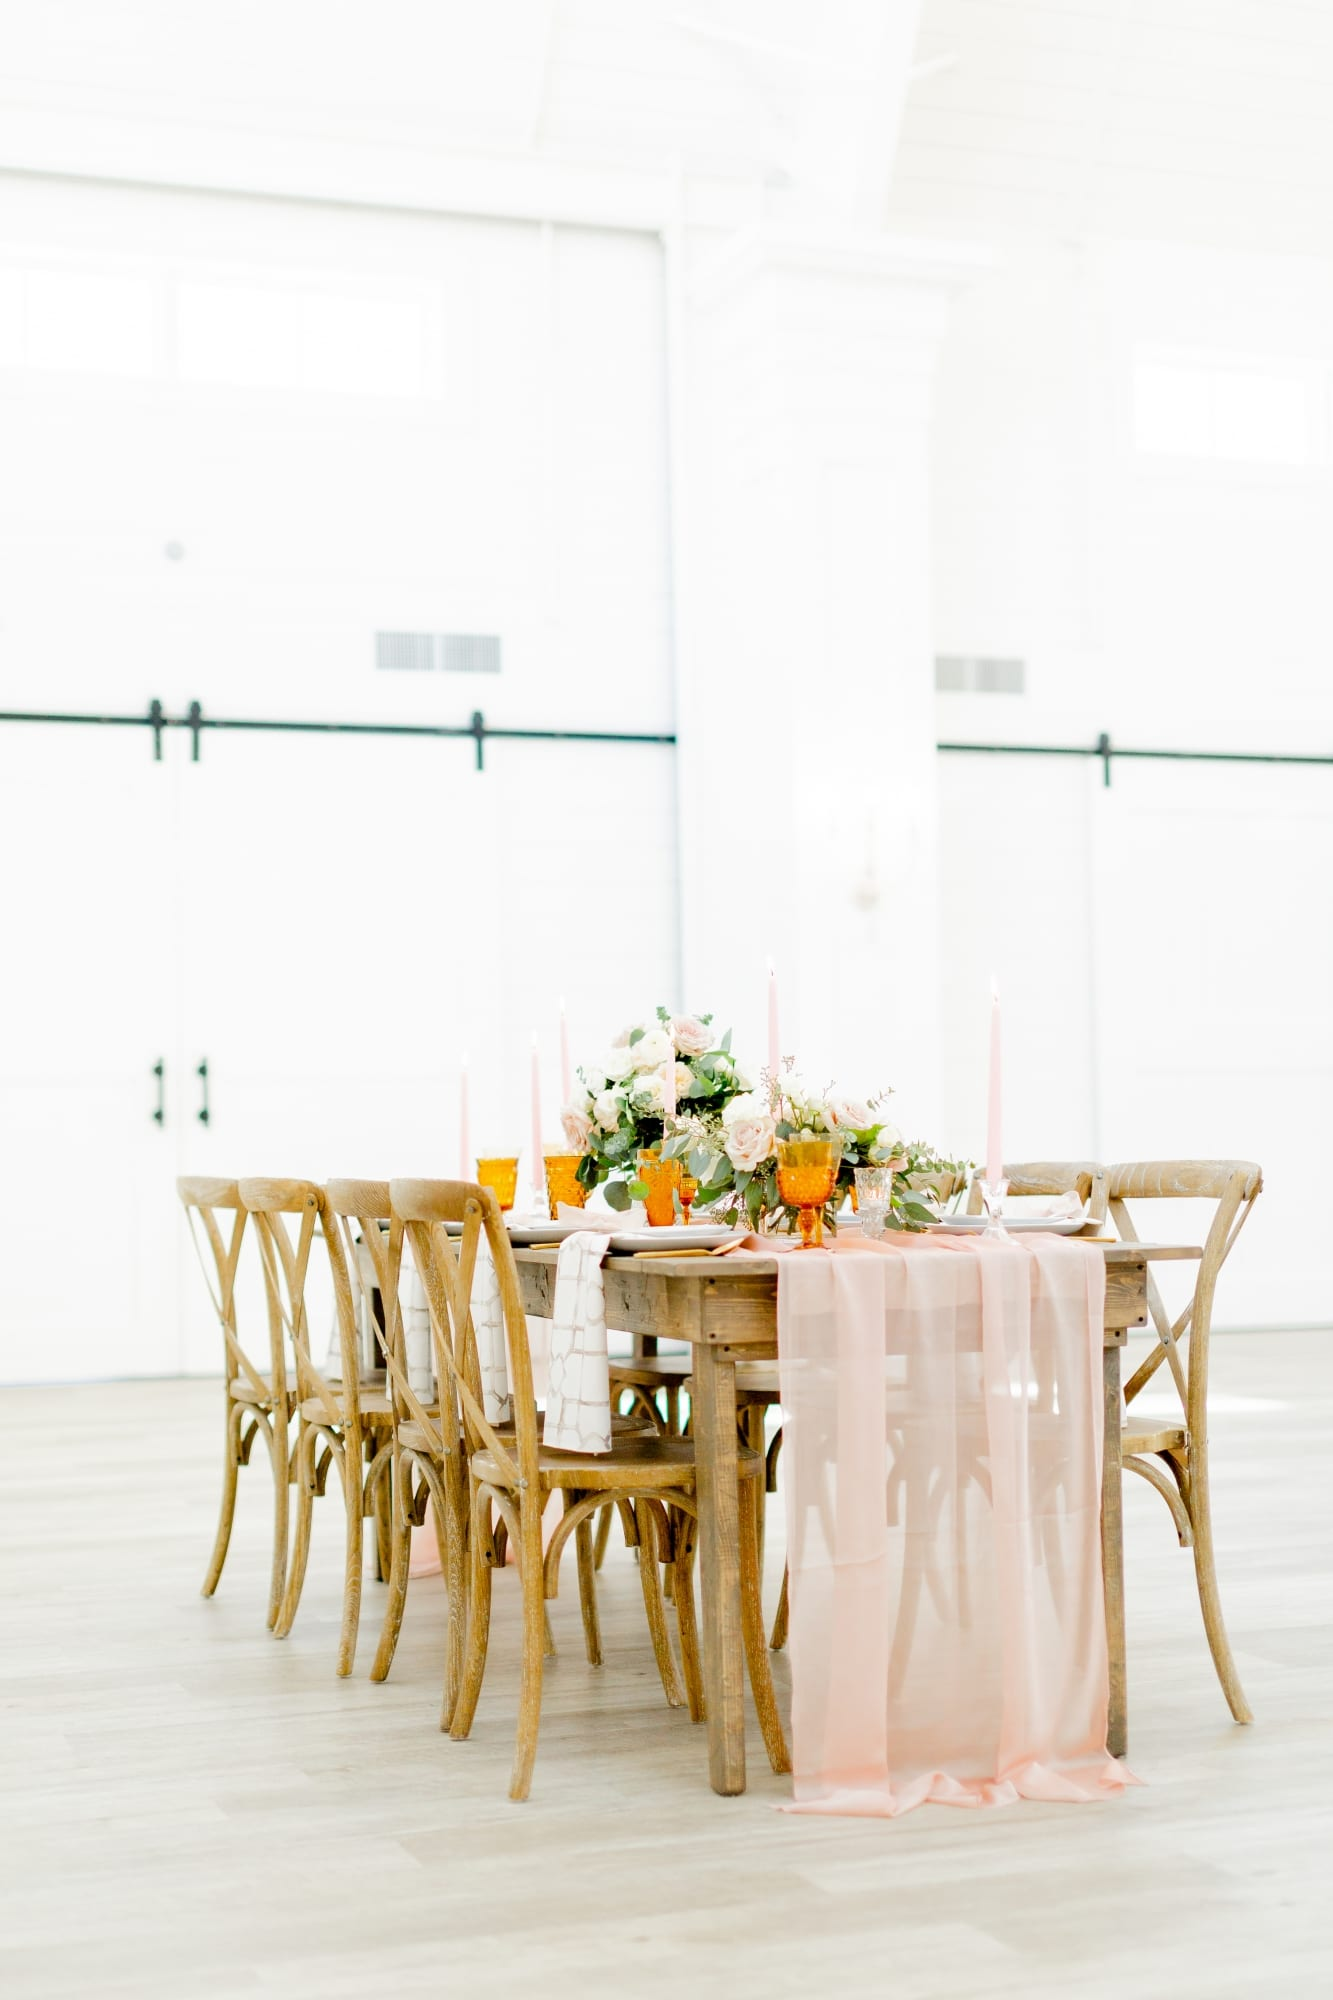 further shot of rustic far wedding table with pink runner